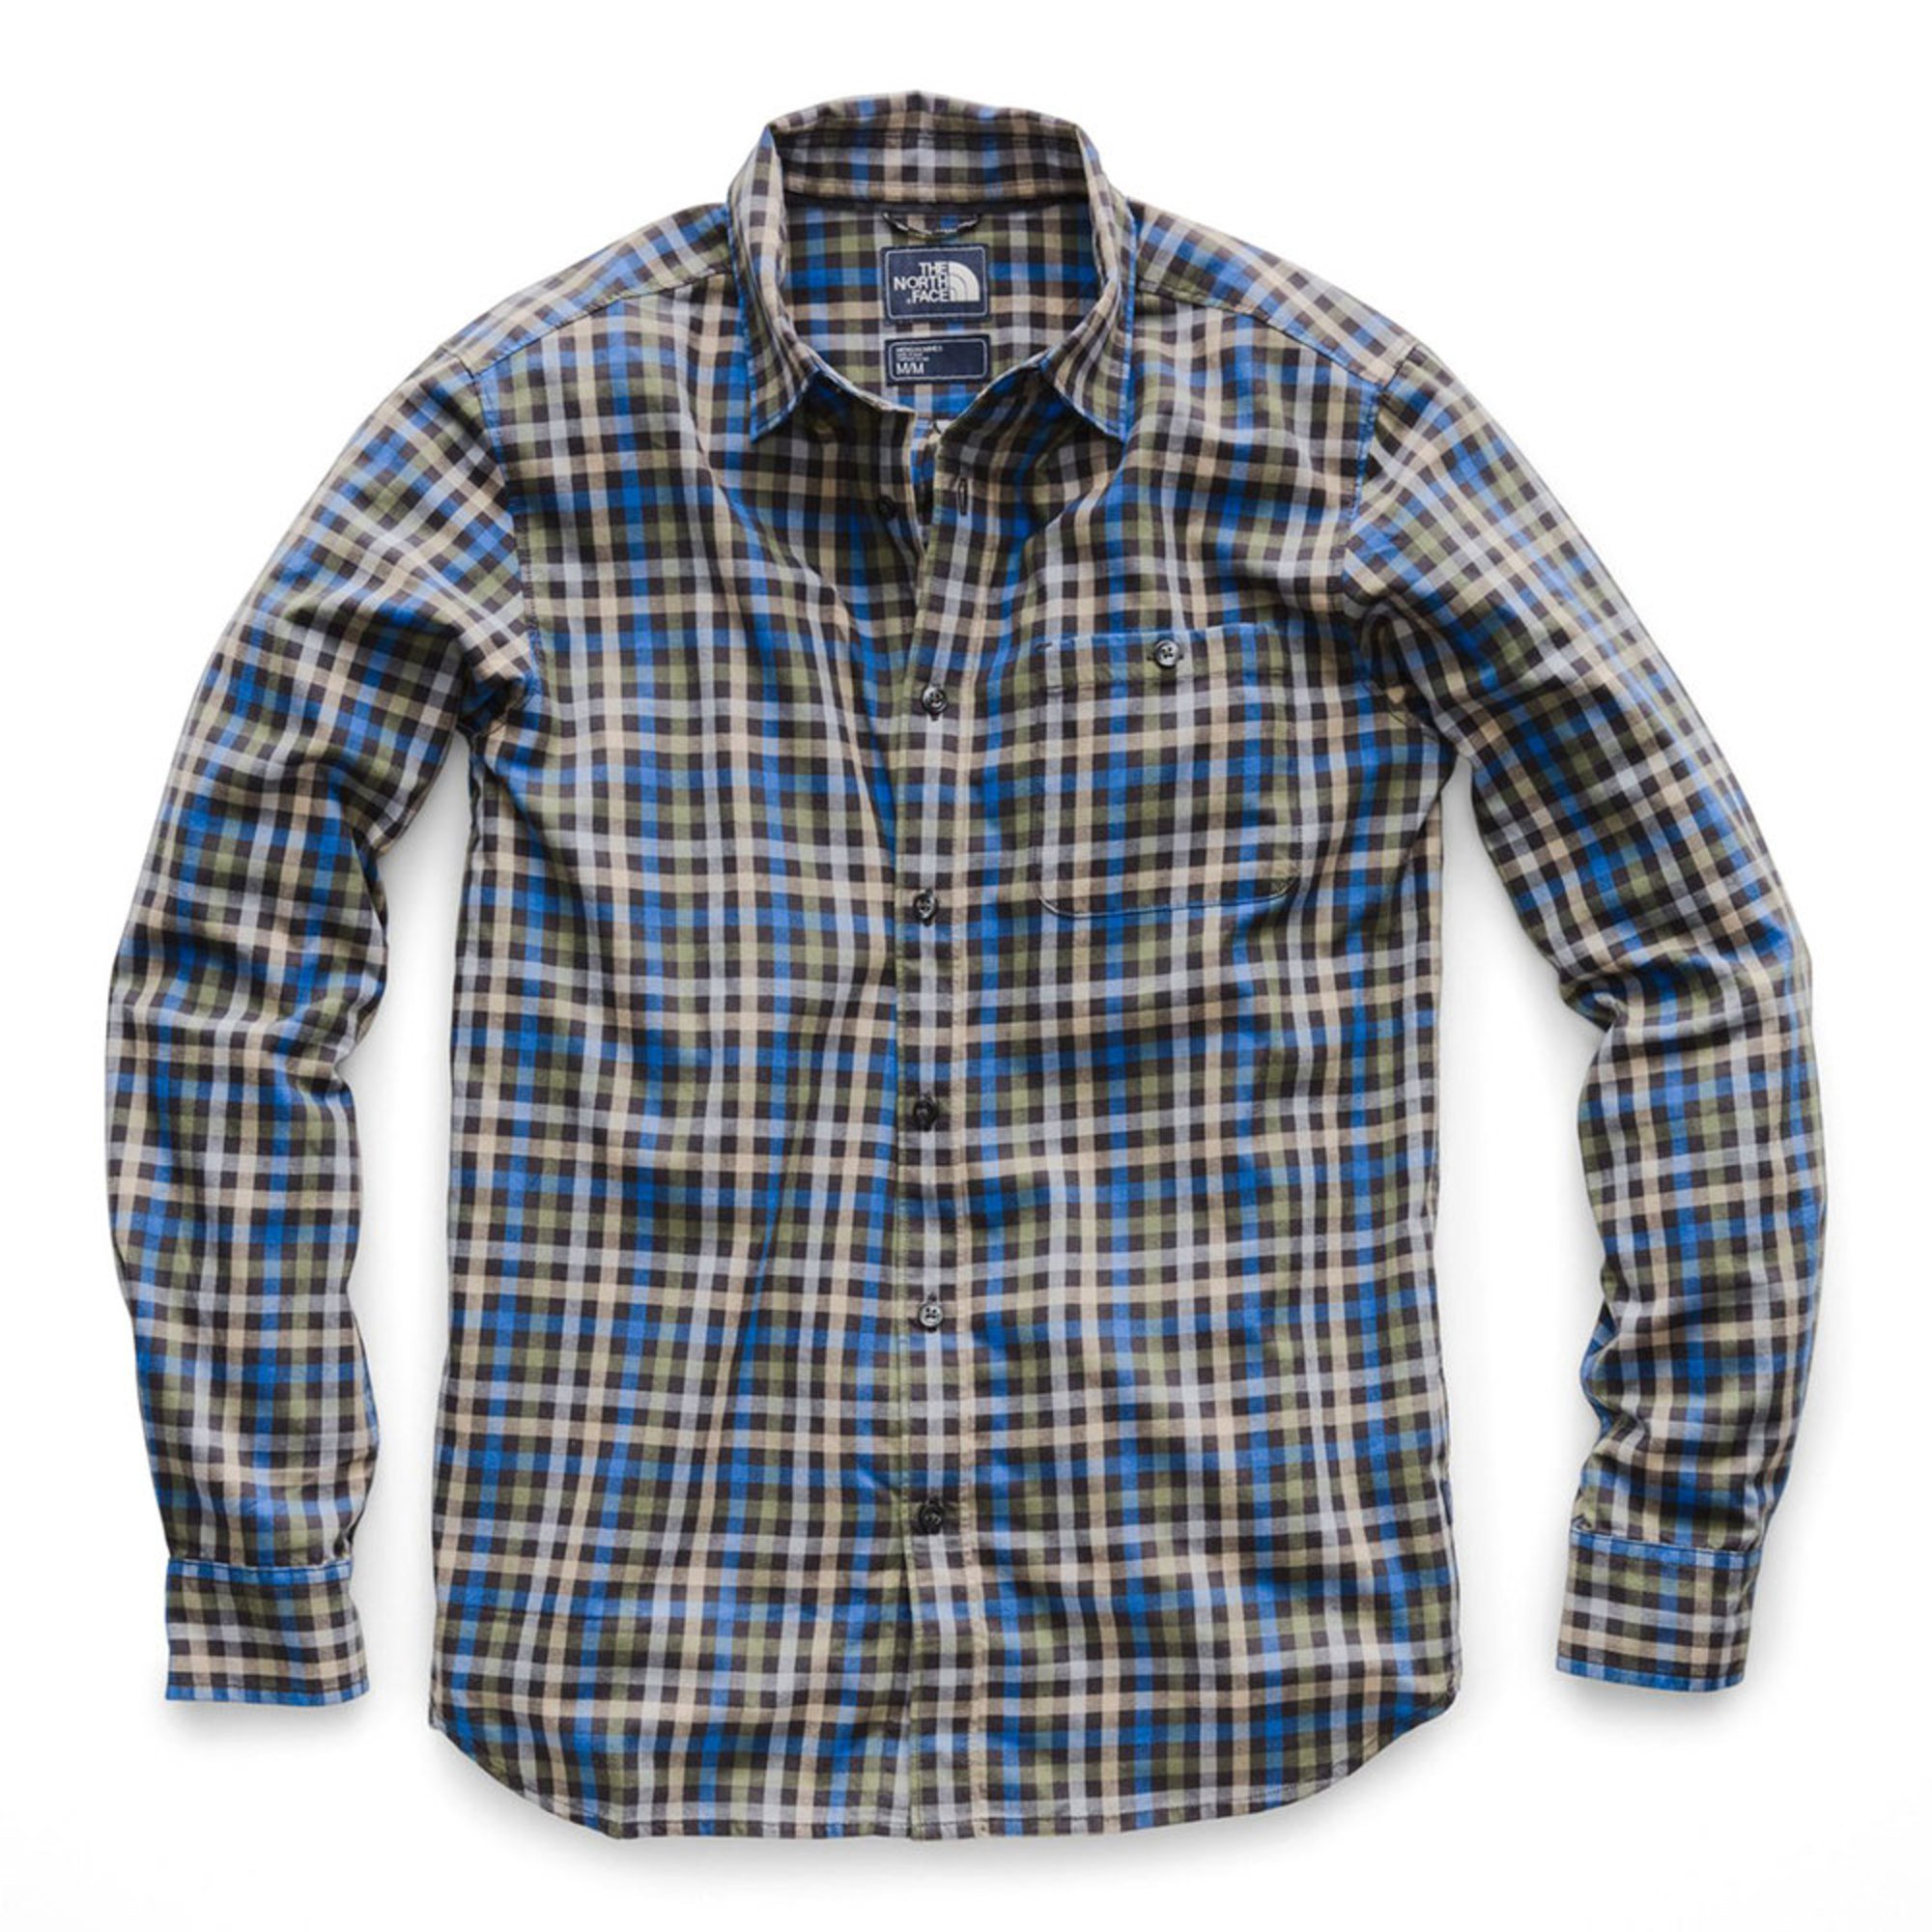 95d973e1a The North Face Men's Hayden Pass 2.0 Long Sleeve Shirt | Outdoor ...